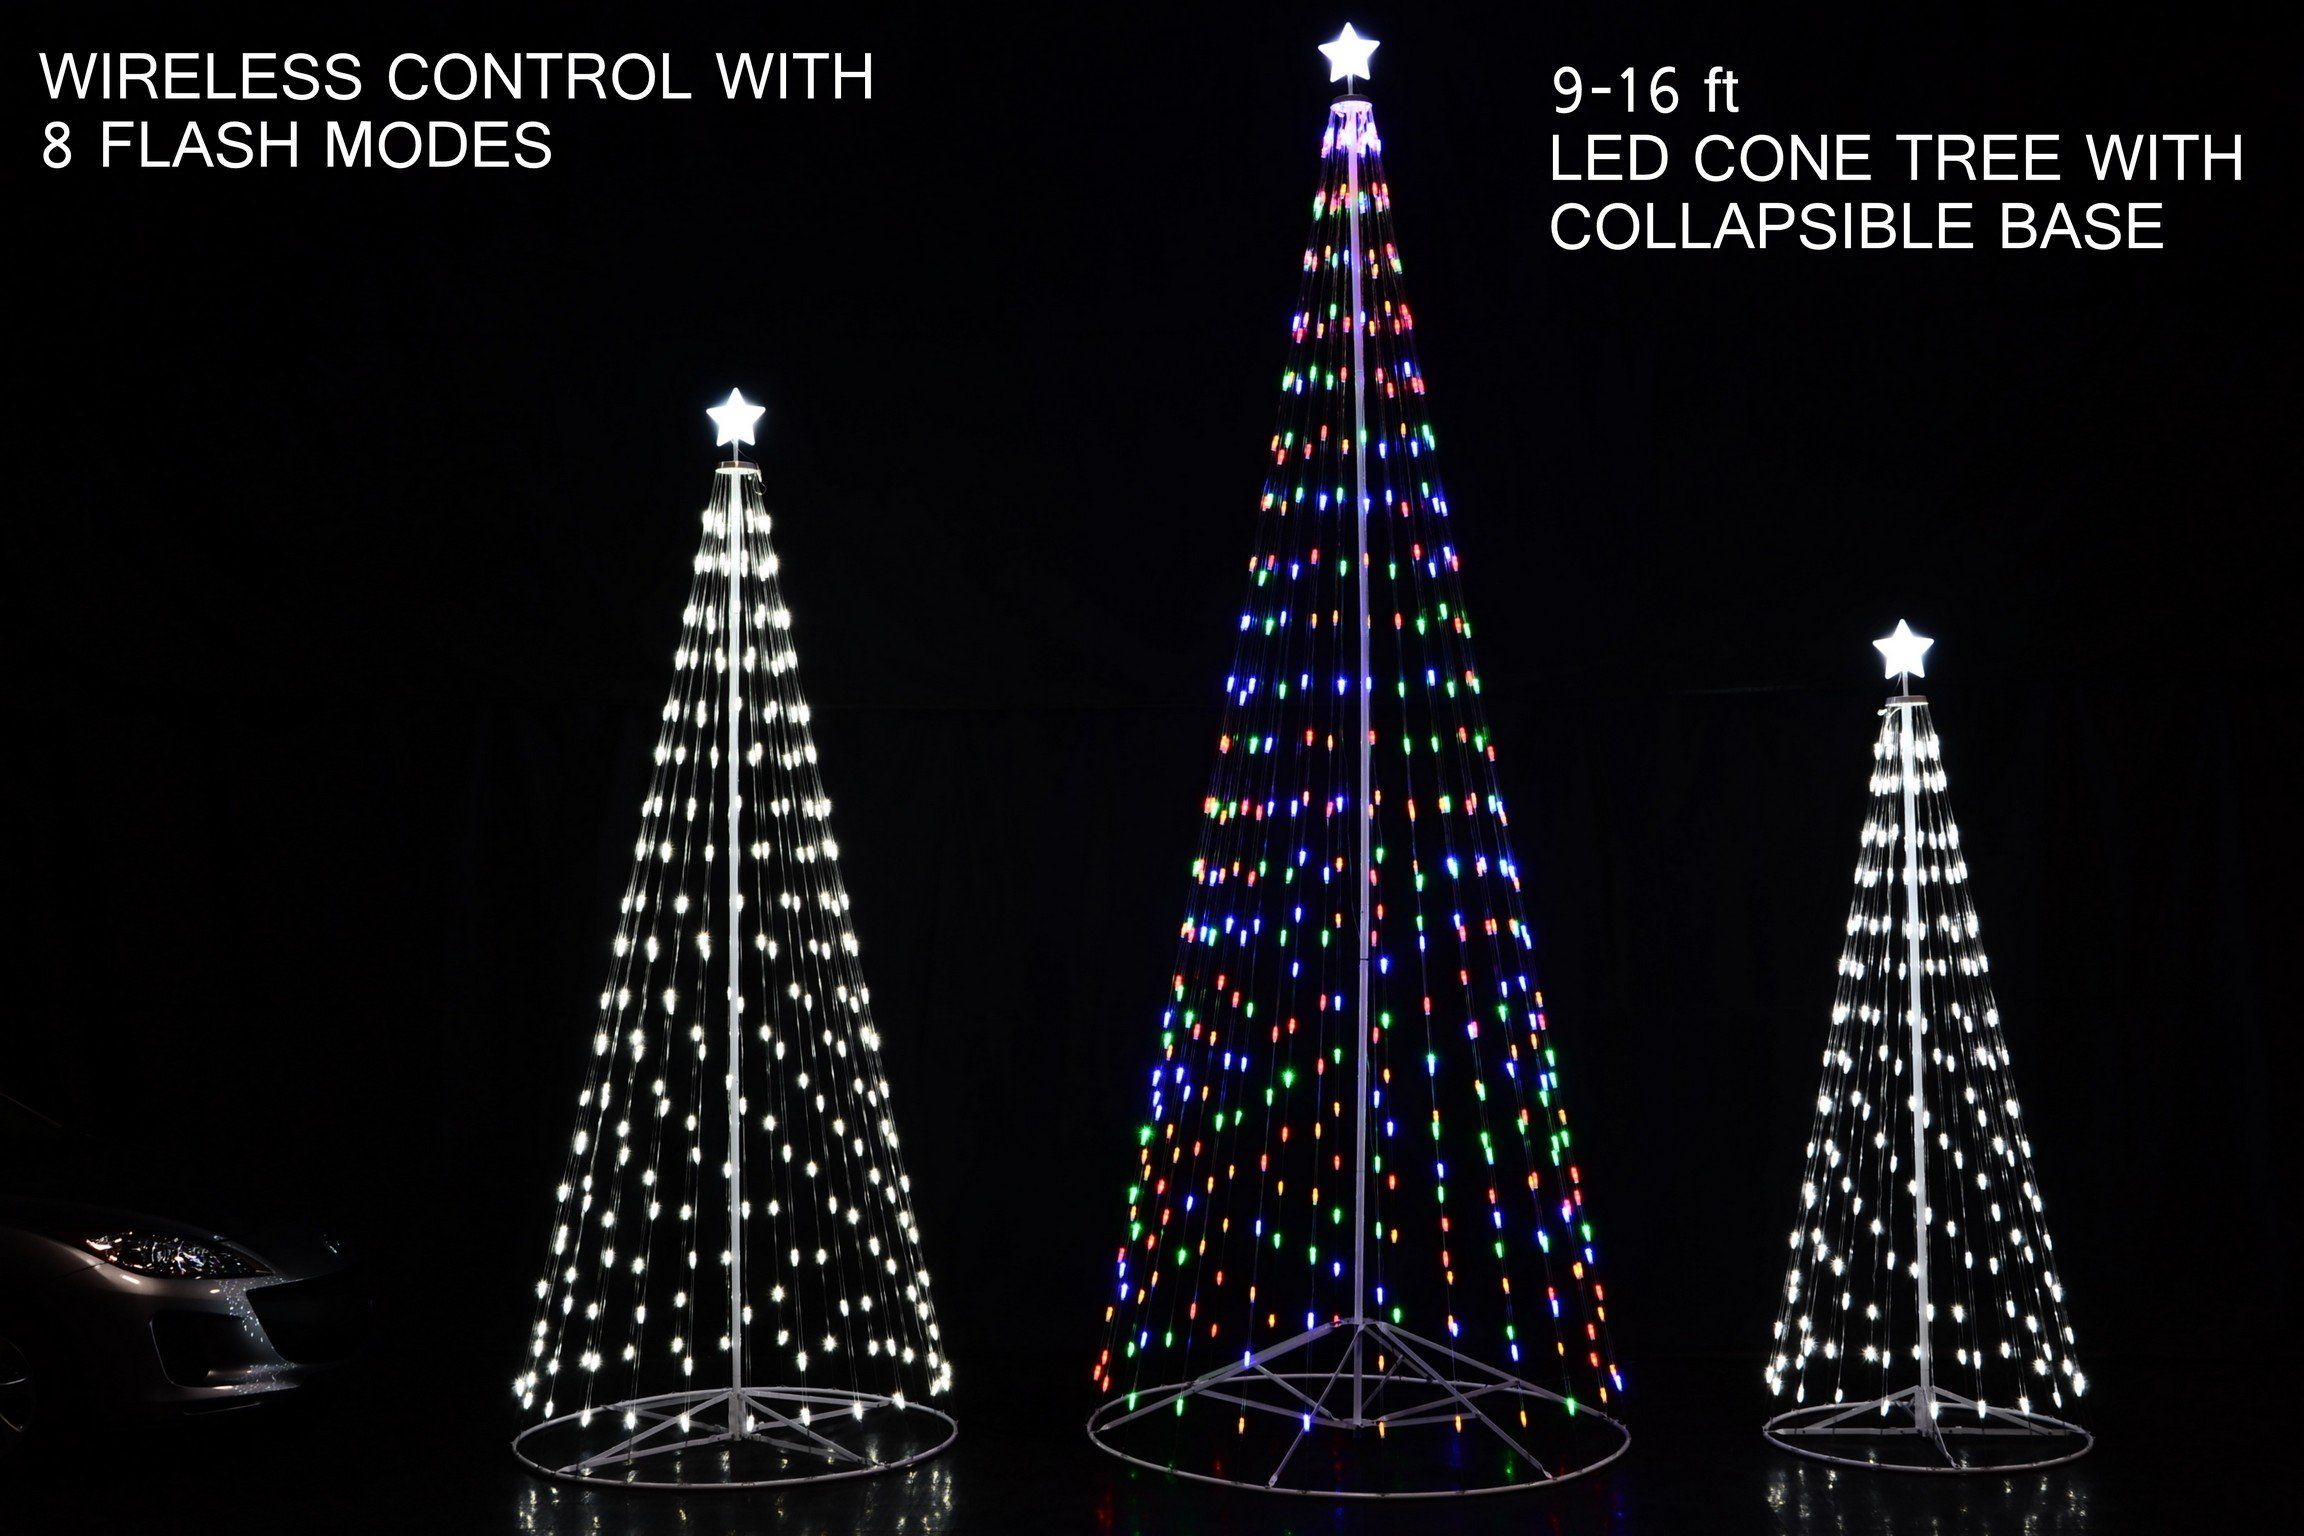 108 Inch 9 Ft Led Light Christmas Tree Multicolor With Wireless Remote Control 8 Light Modes Indoor O Outdoor Holiday Decor Outdoor Holidays Led Christmas Tree